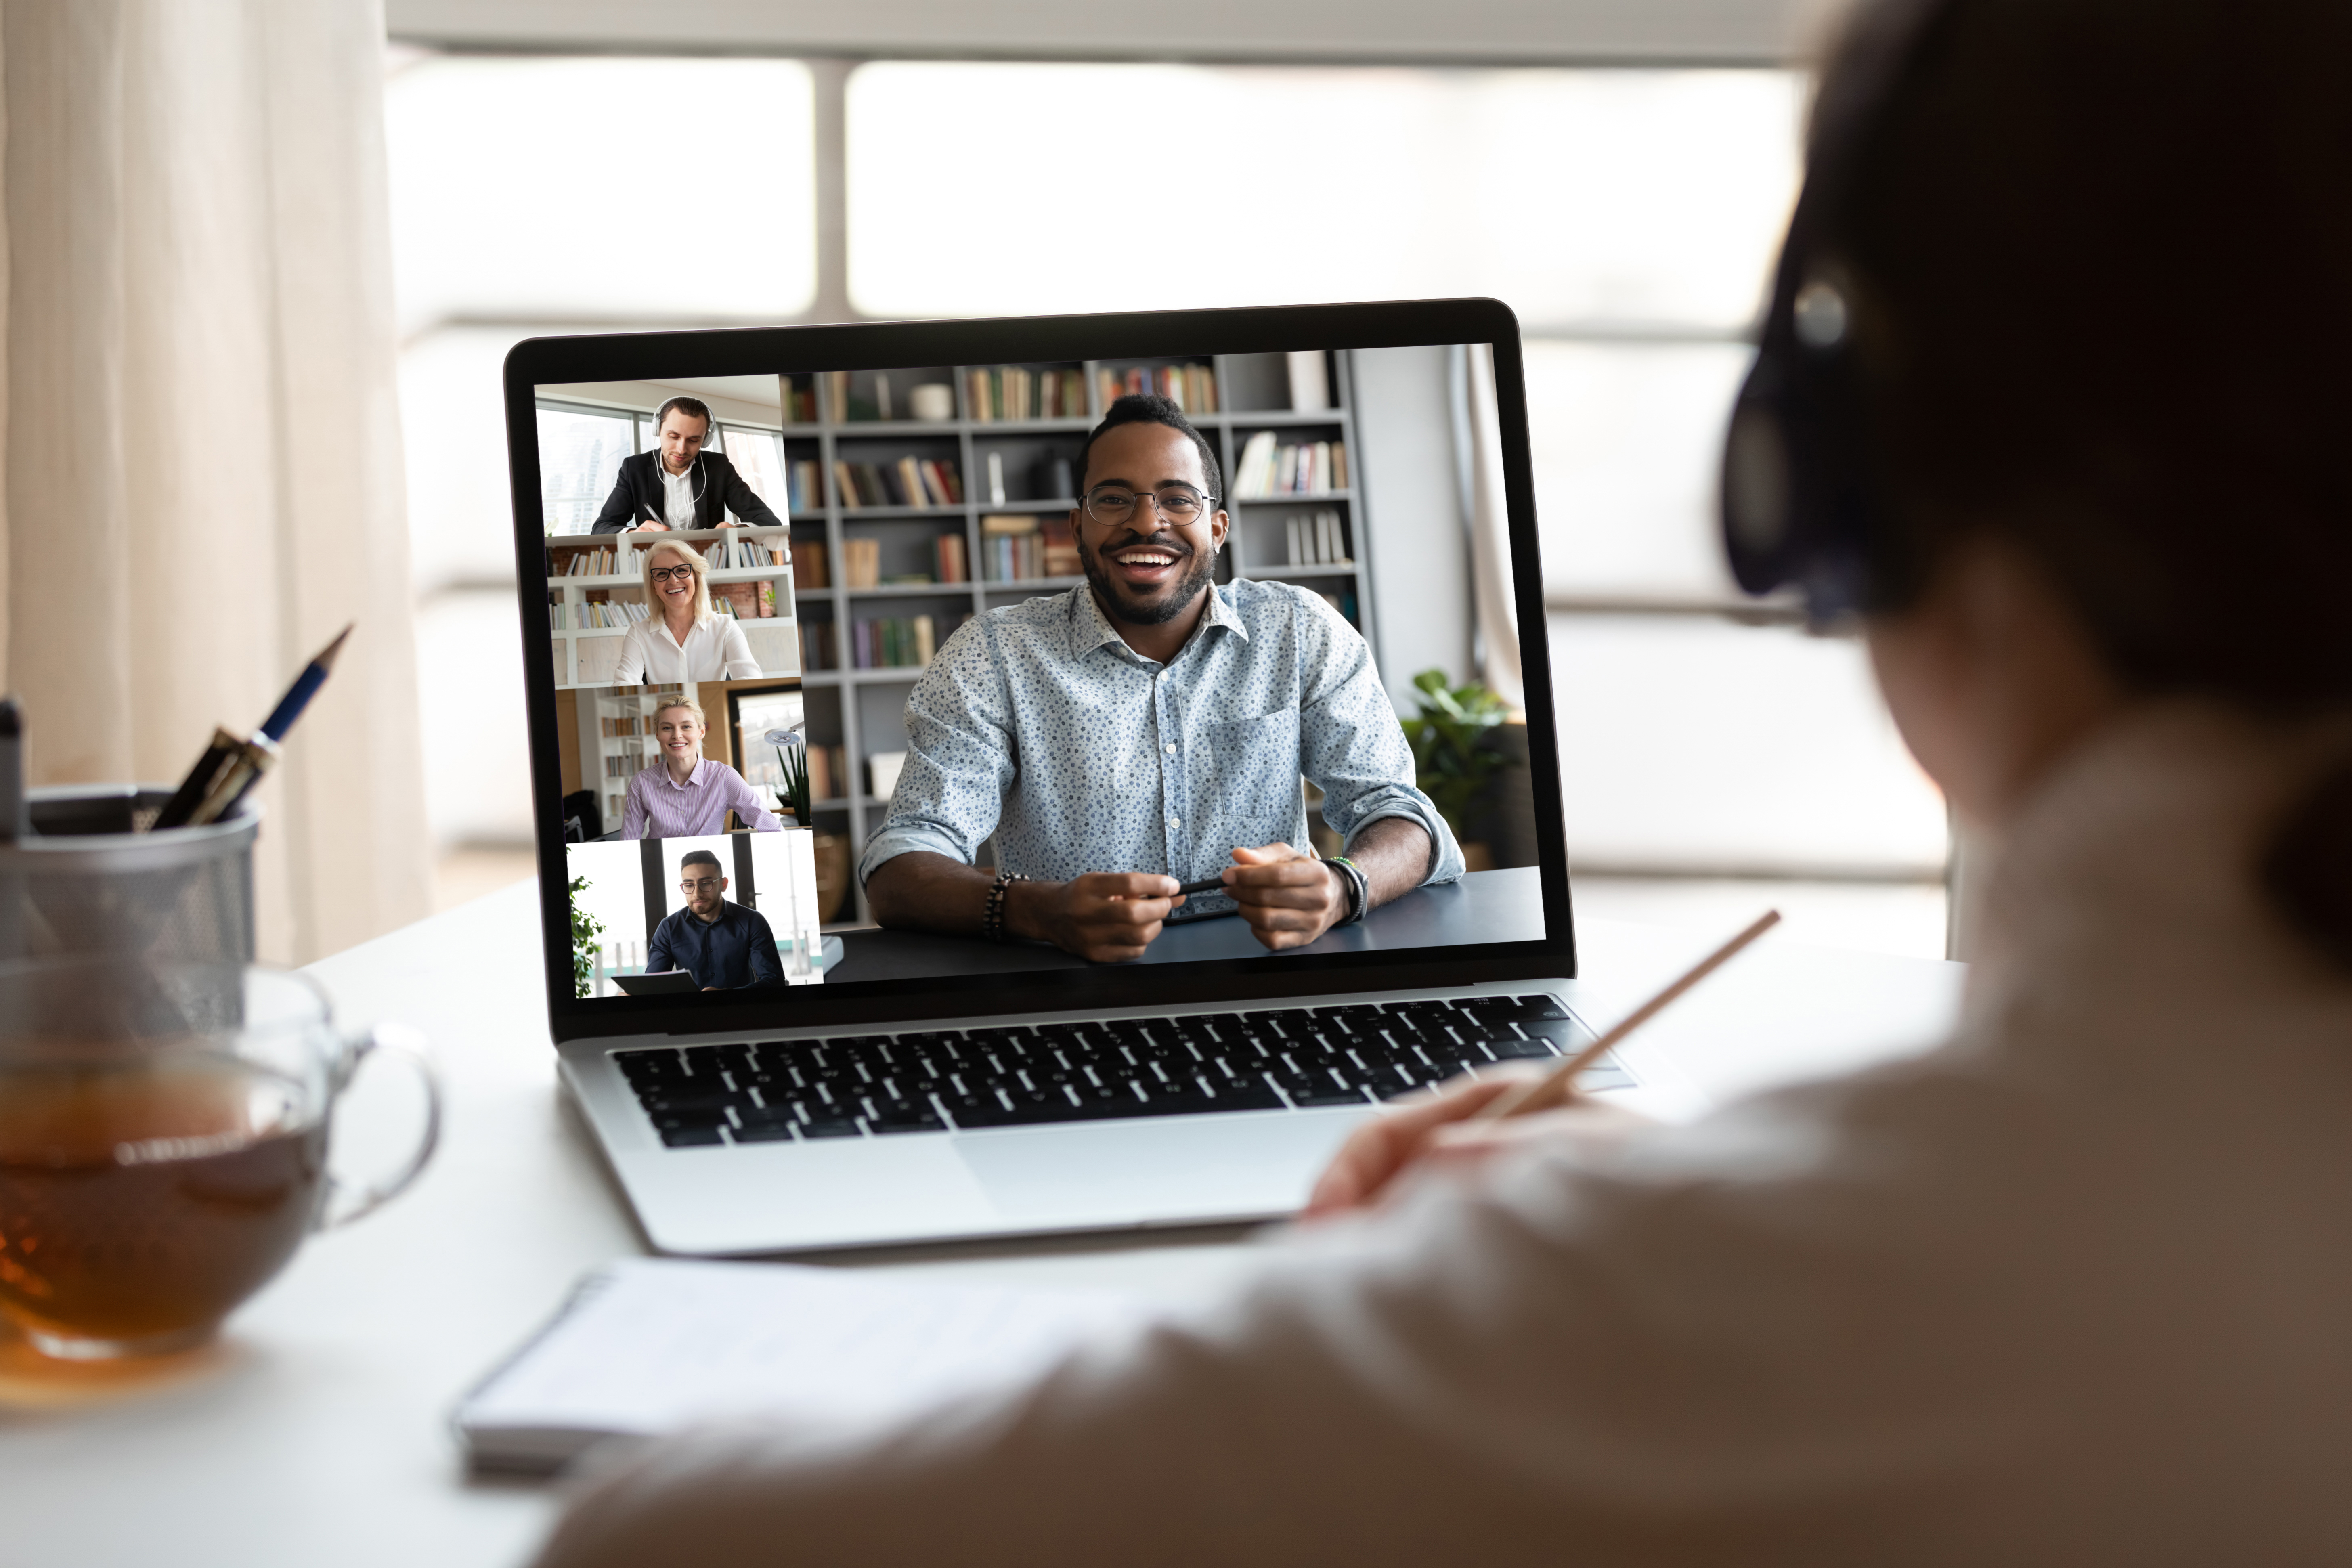 stock image looking over someone's shoulder at zoom call on laptop screen